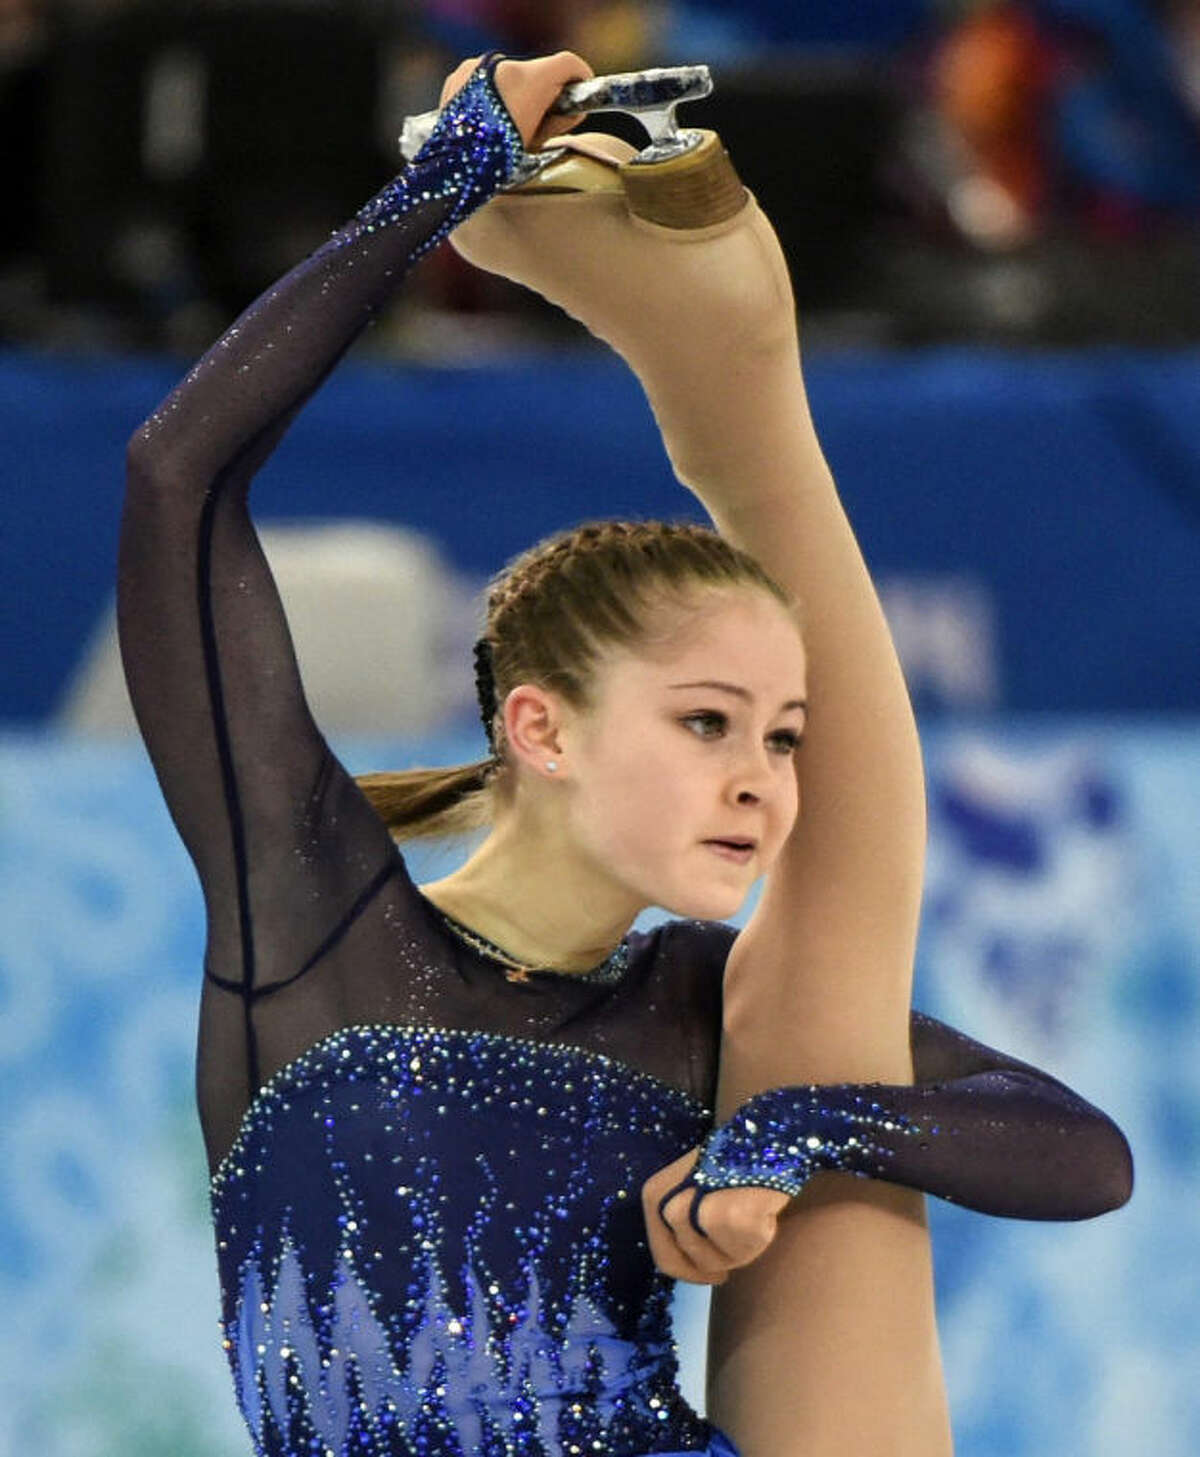 Yulia Lipnitskaya, of Russia, competes in the women's team short program figure skating competition at the Iceberg Skating Palace during the 2014 Winter Olympics, Saturday, Feb. 8, 2014, in Sochi, Russia. (AP Photo/The Canadian Press, Paul Chiasson)